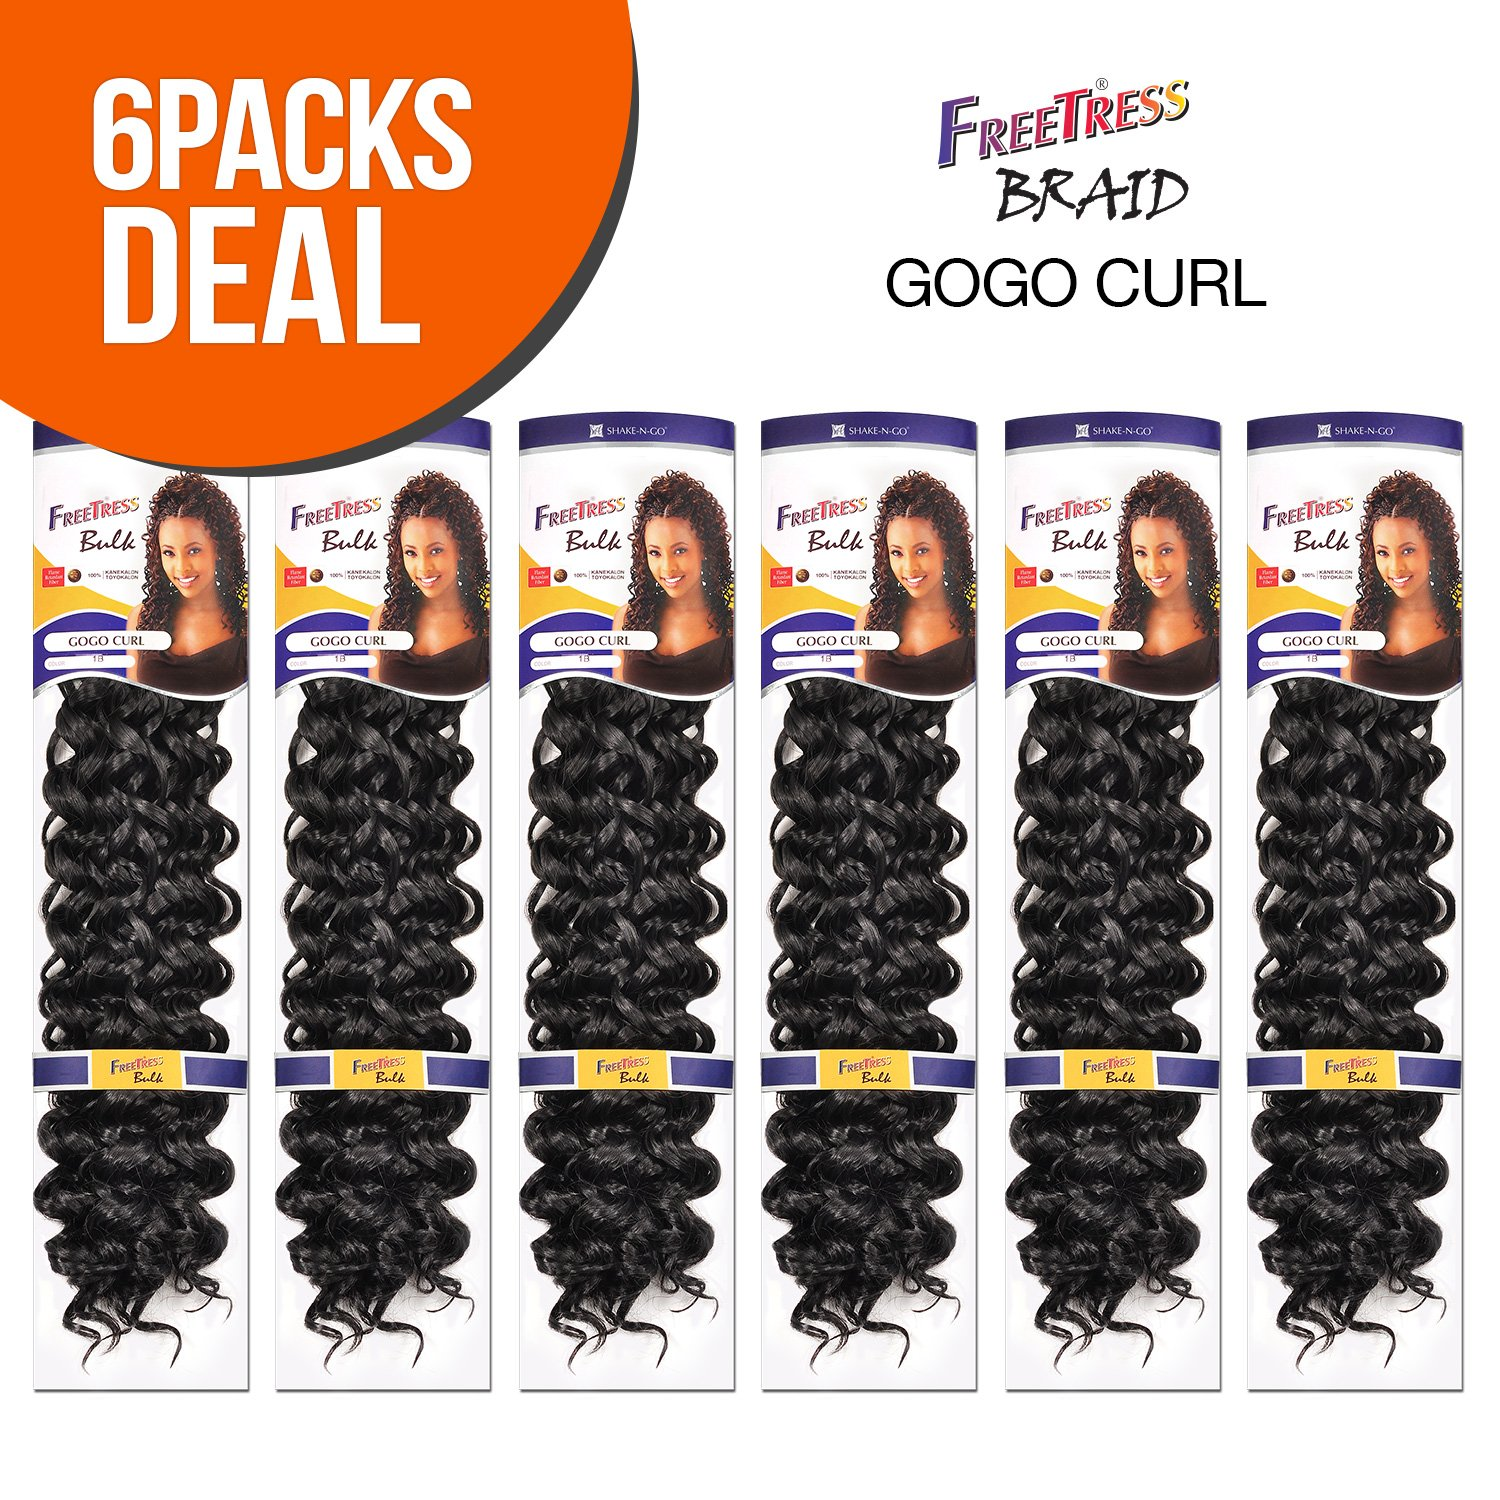 Spasm price Synthetic Hair Inexpensive Braids FreeTress 30 GoGo Curl 6-PACK